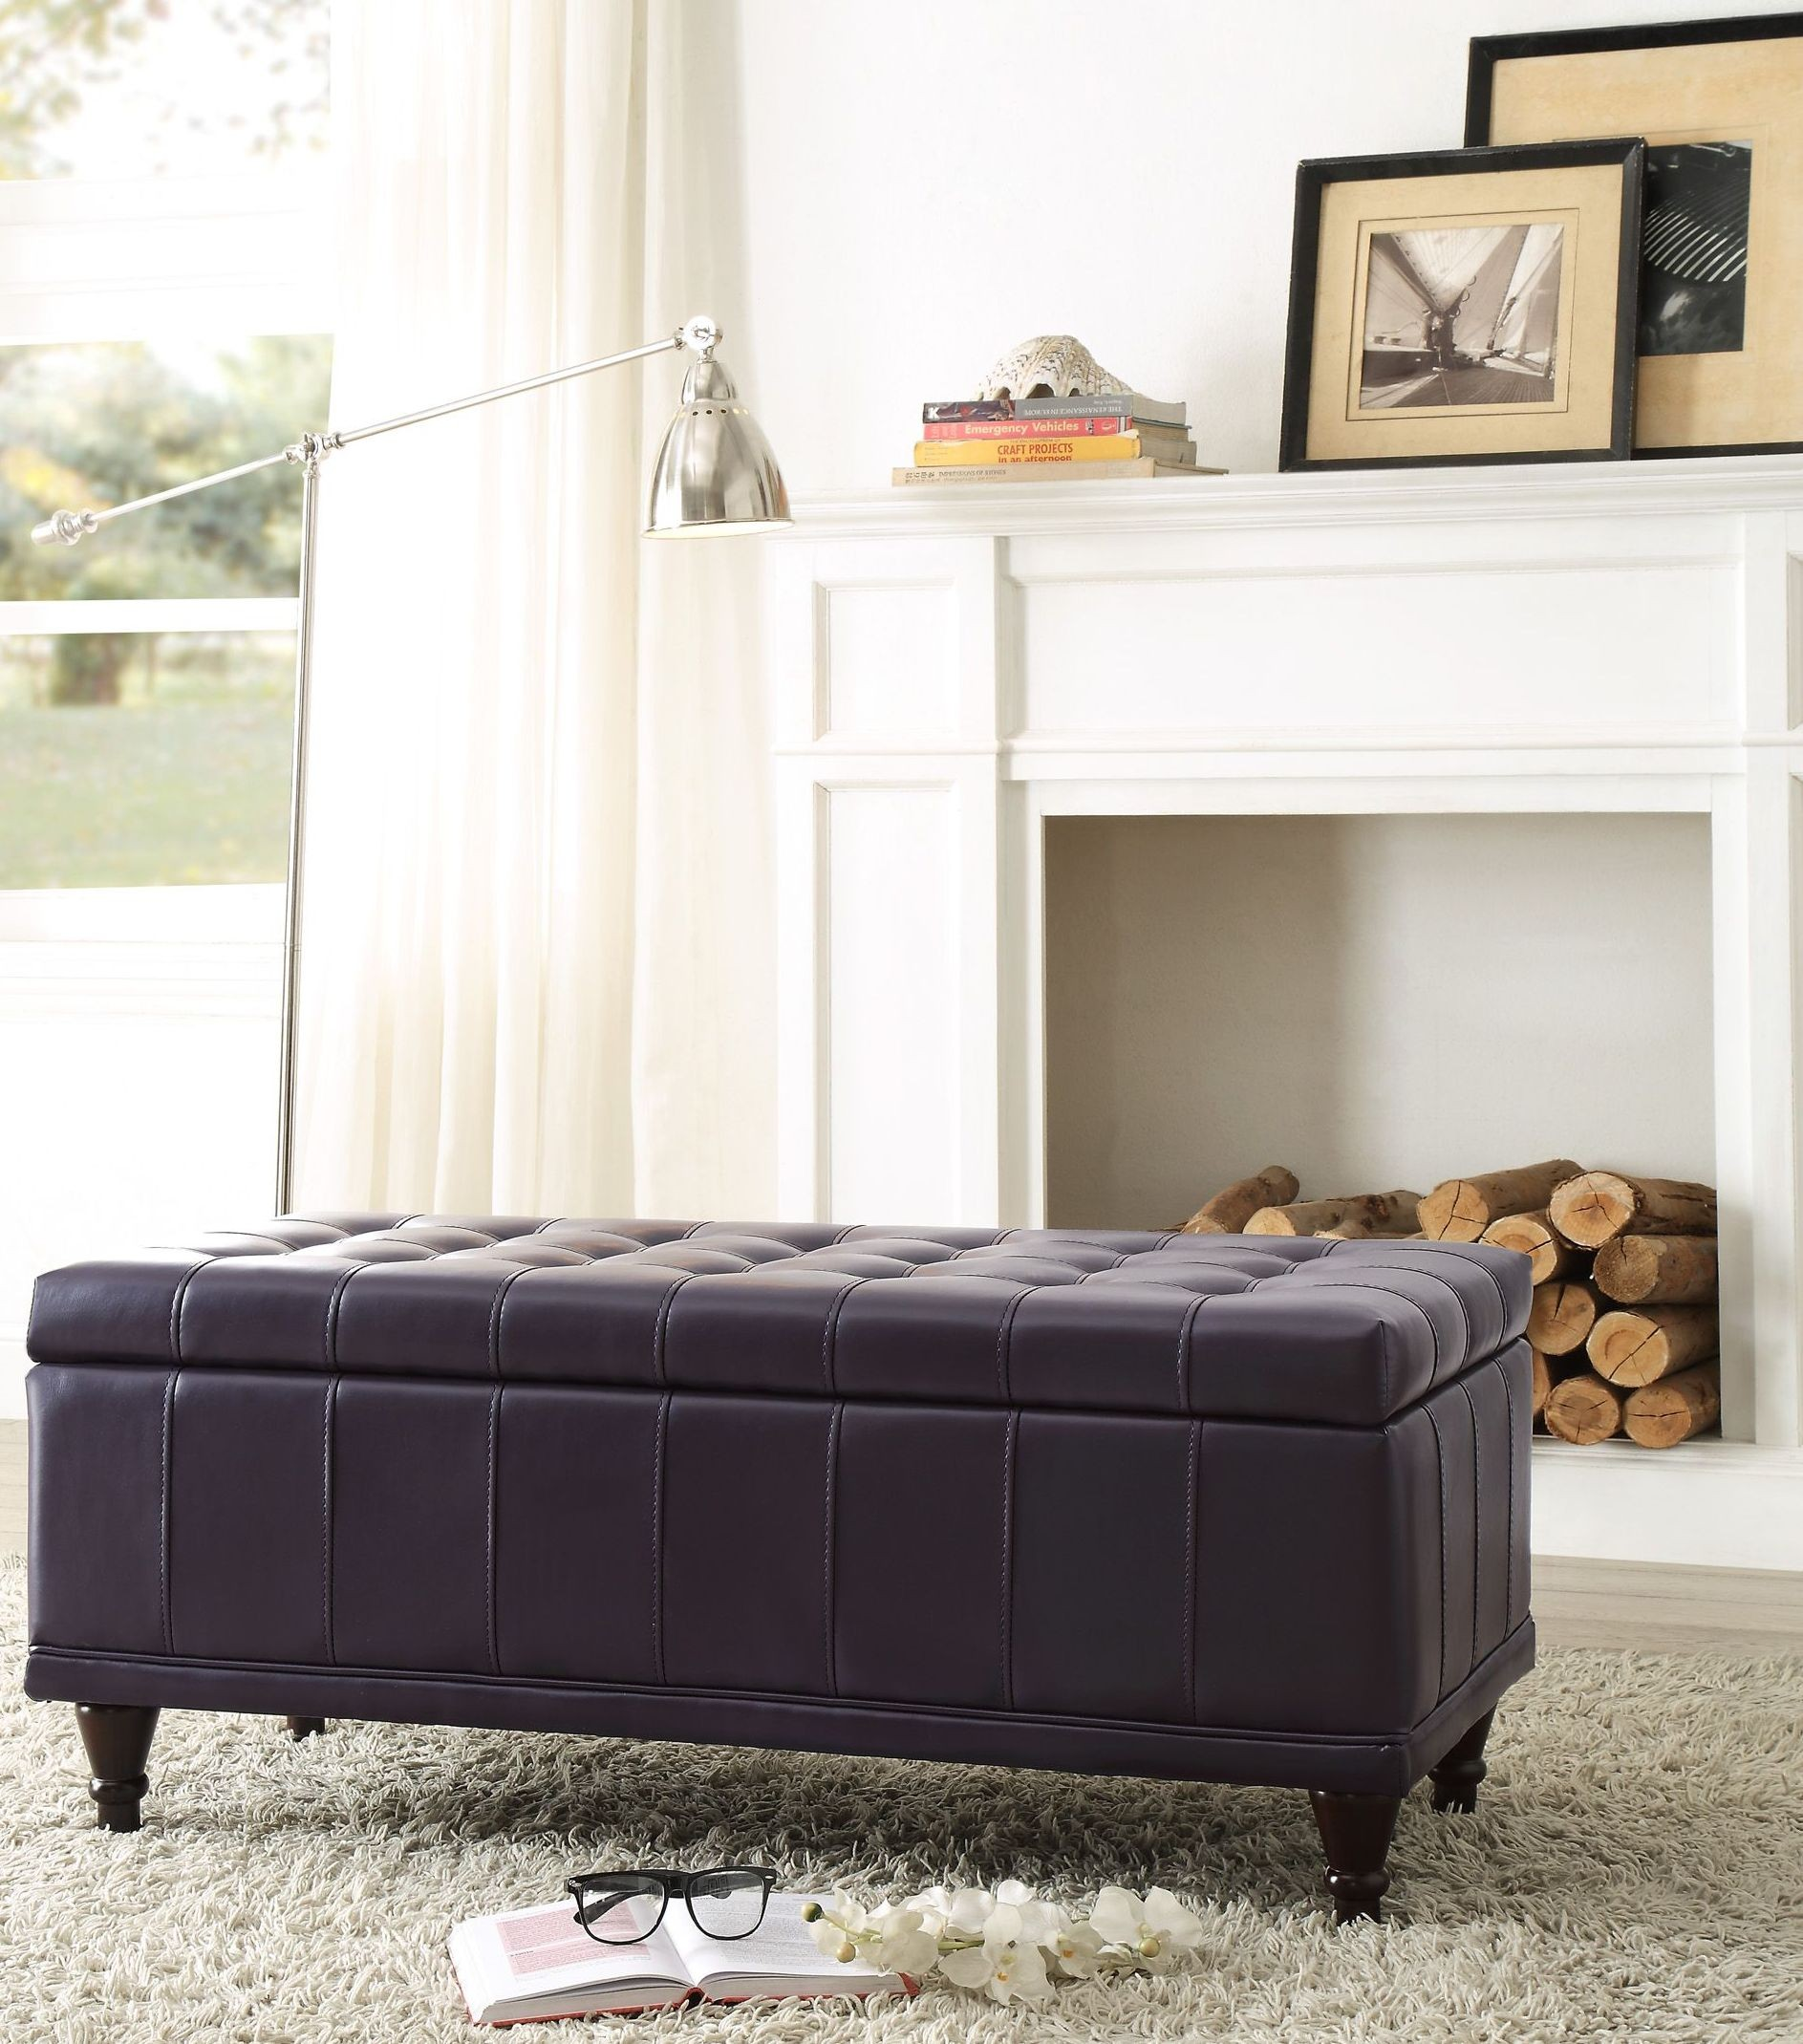 Afton purple lift top storage bench from homelegance coleman furniture Purple storage bench